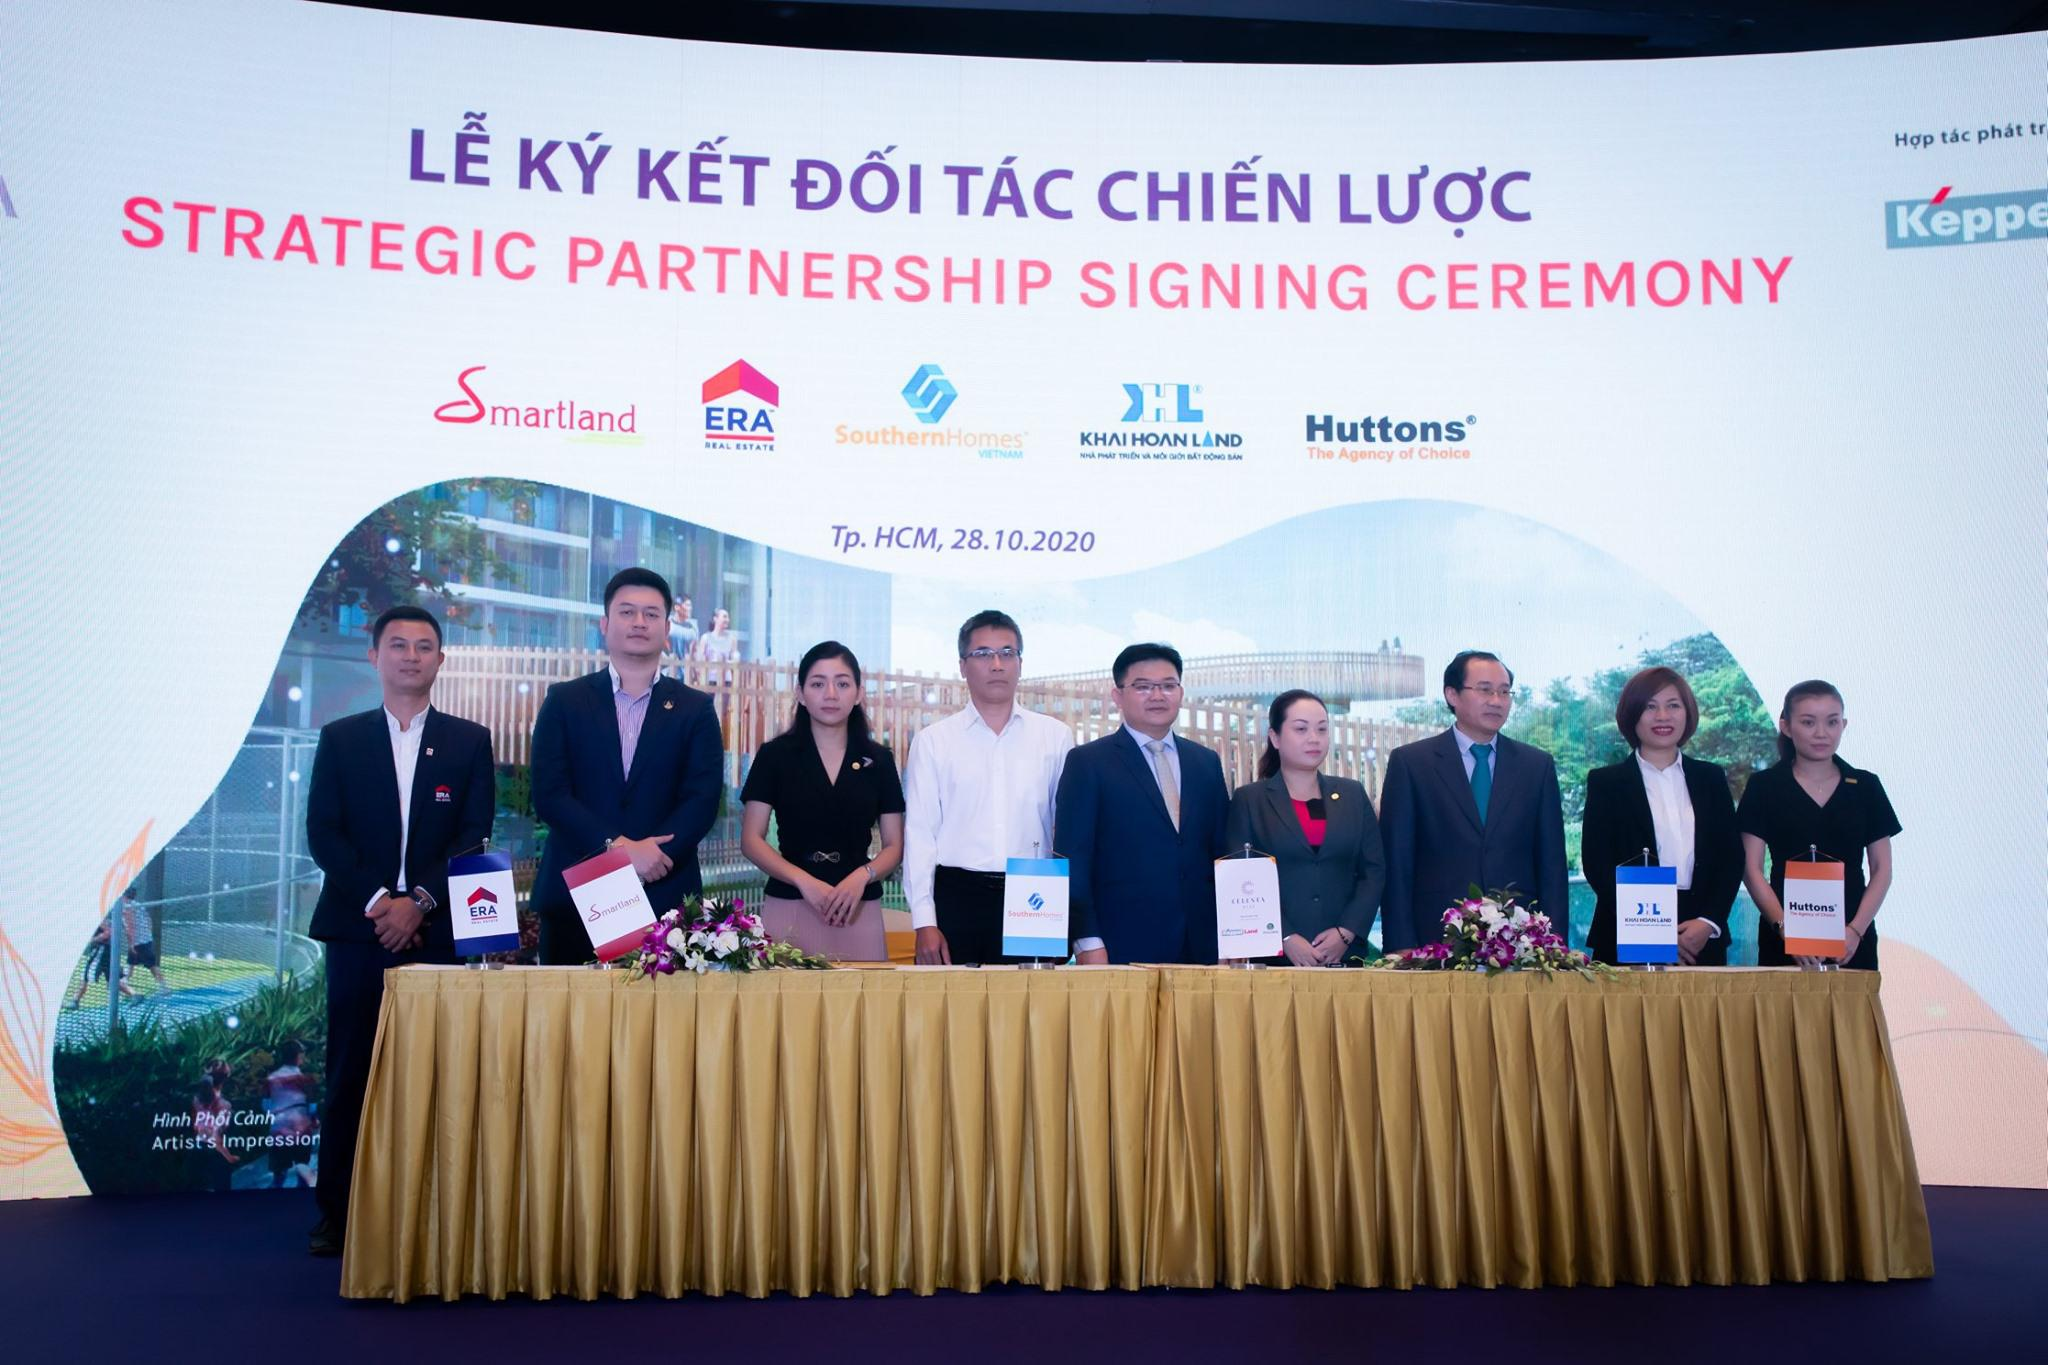 CELESTA RISE - STRATEGIC PARTNERSHIP SIGNING CEREMONY